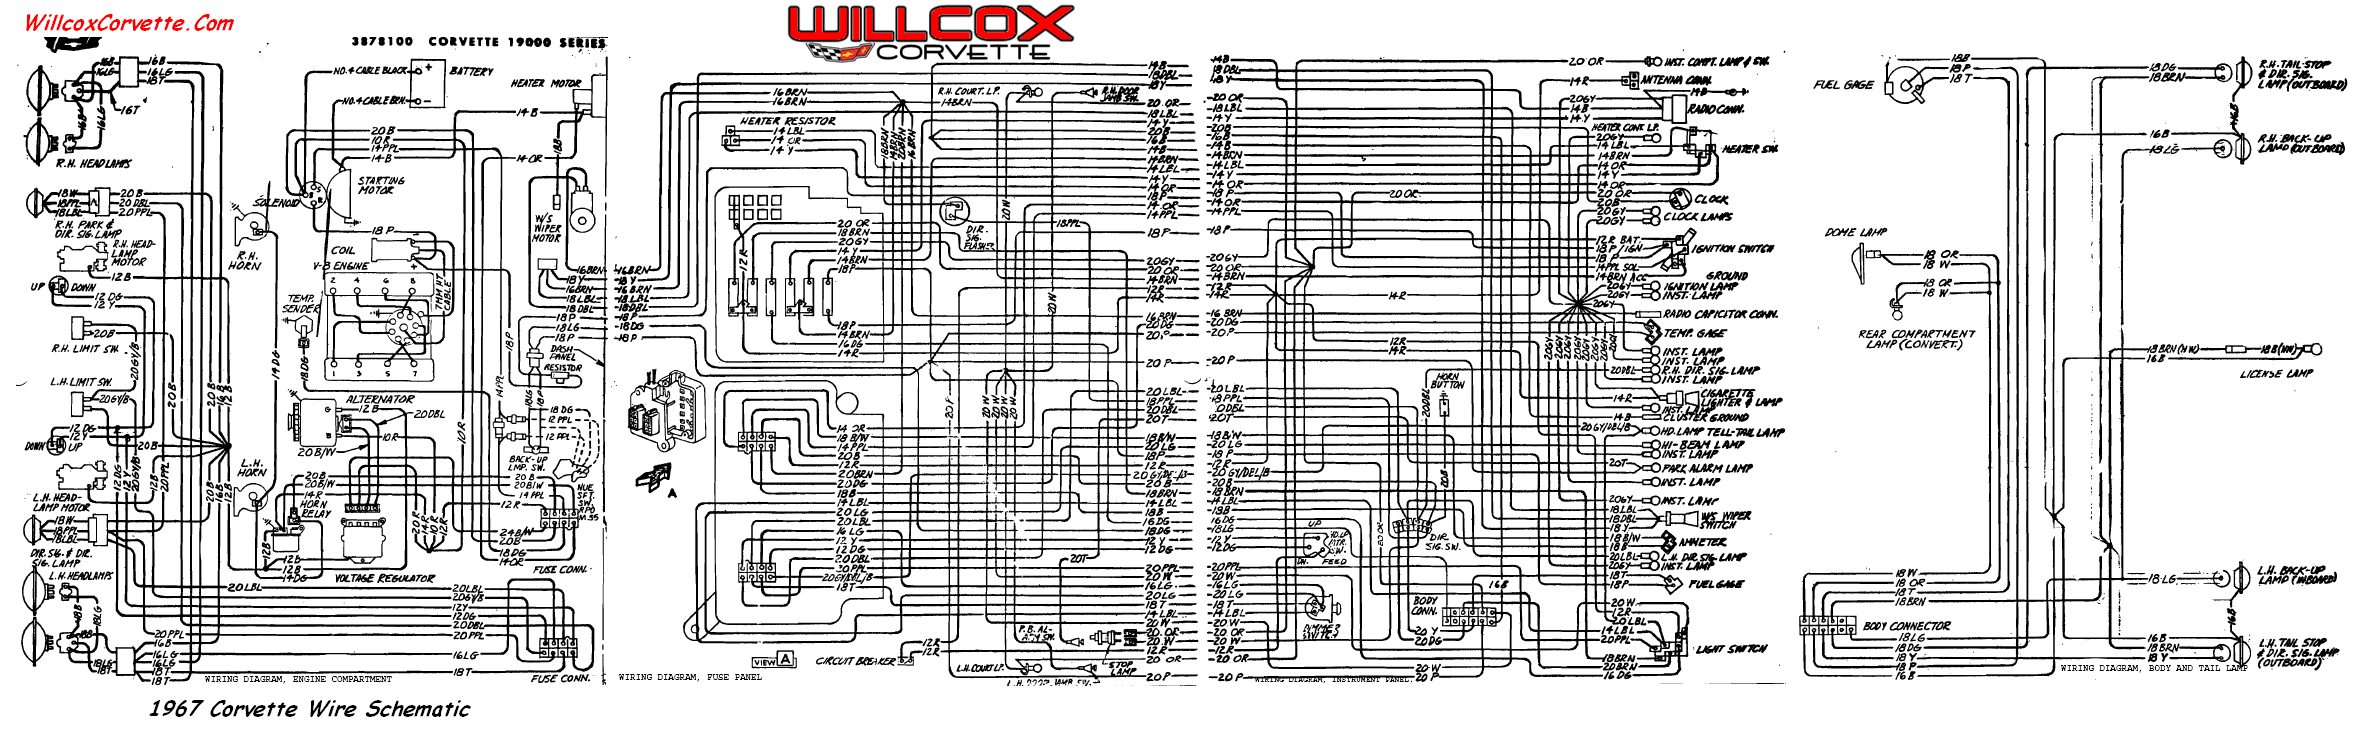 67 wire schematic for tracing wires wiring diagram for 1966 corvette readingrat net 66 Corvette at webbmarketing.co